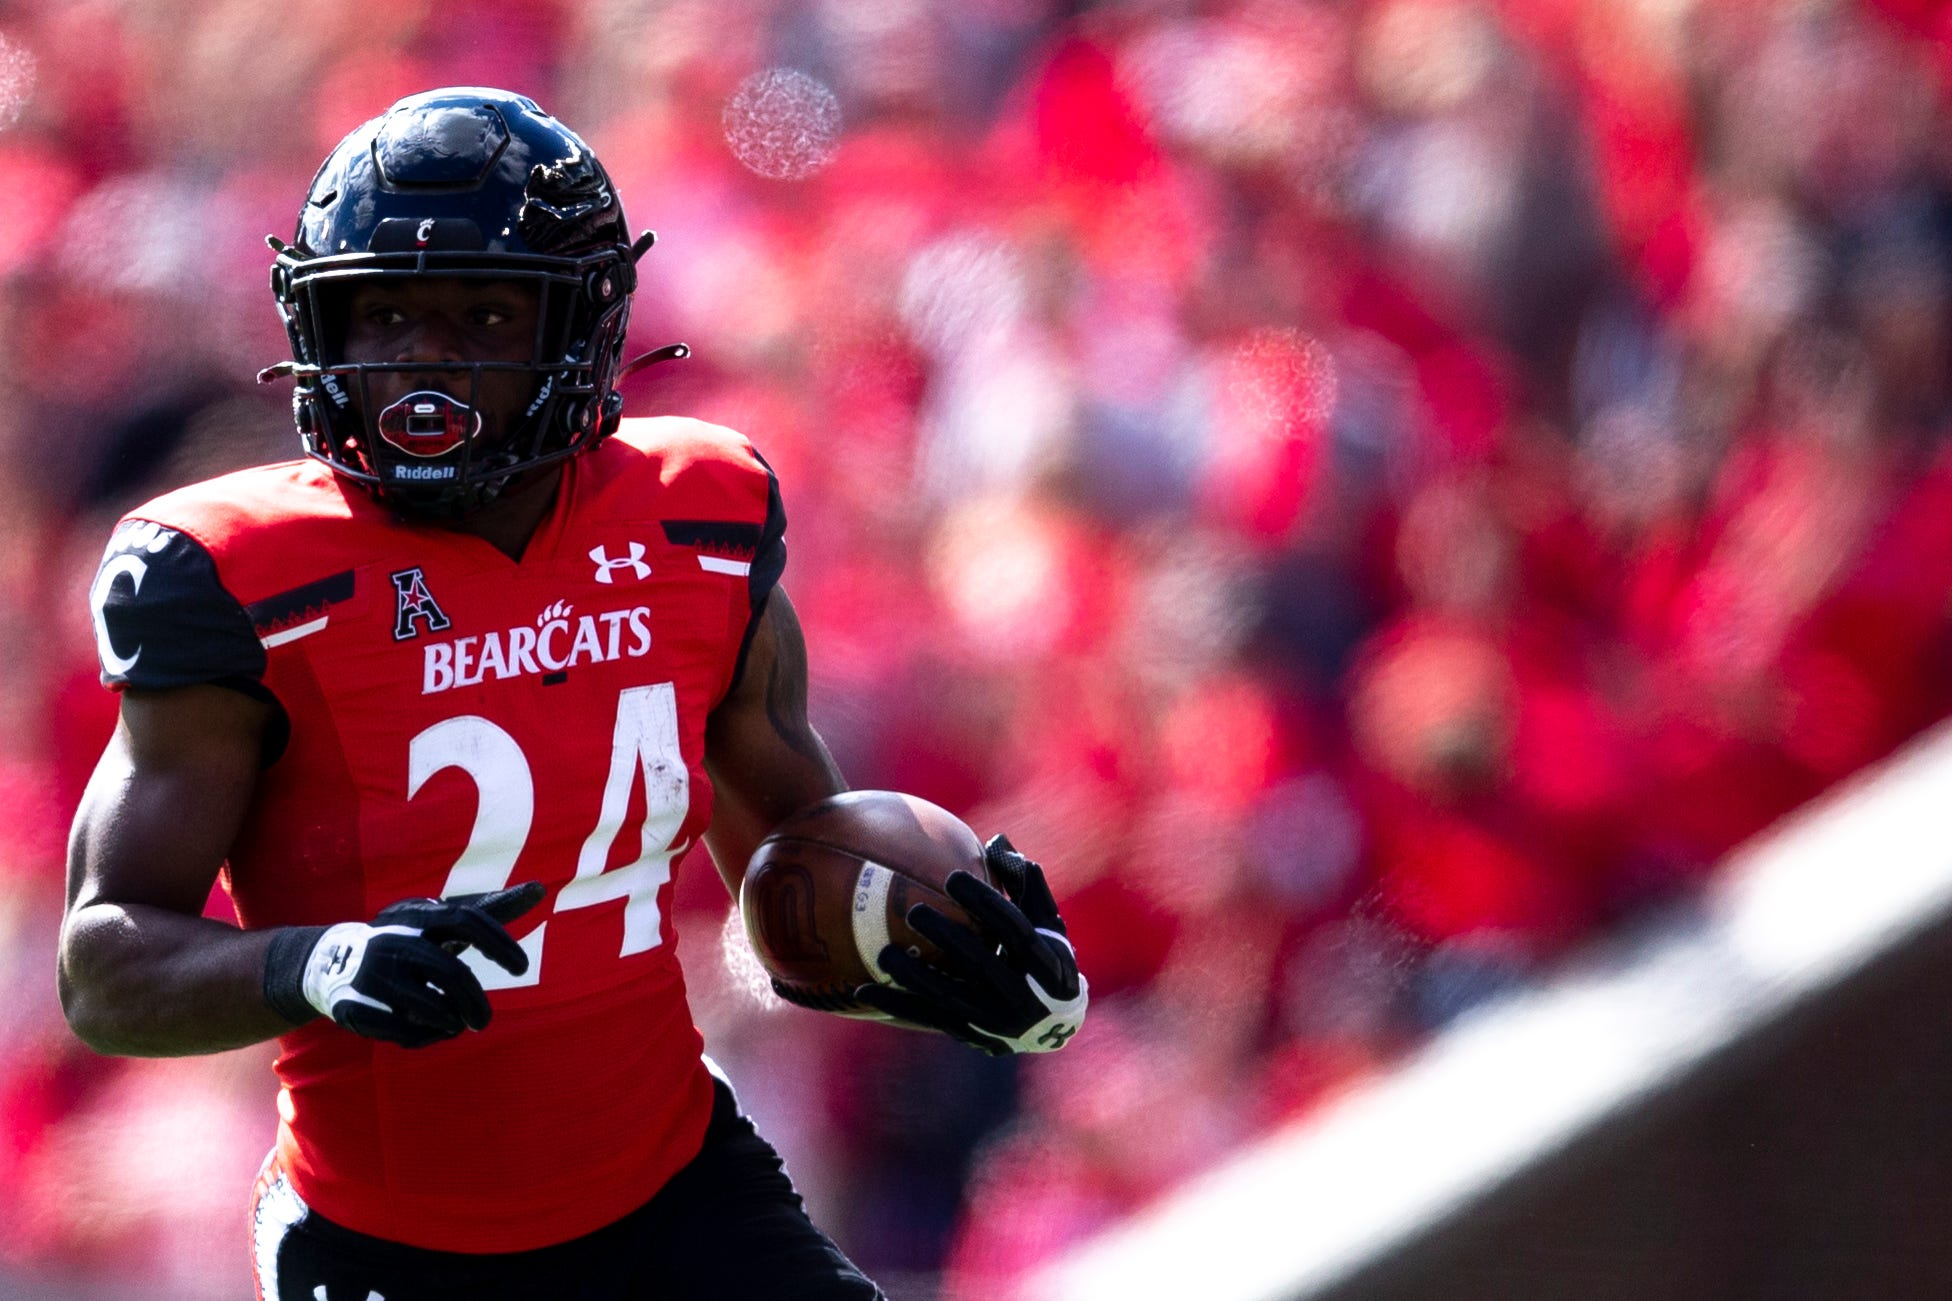 Analysis: If Desmond Ridder's on the list of Heisman hopefuls, Jerome Ford should be too